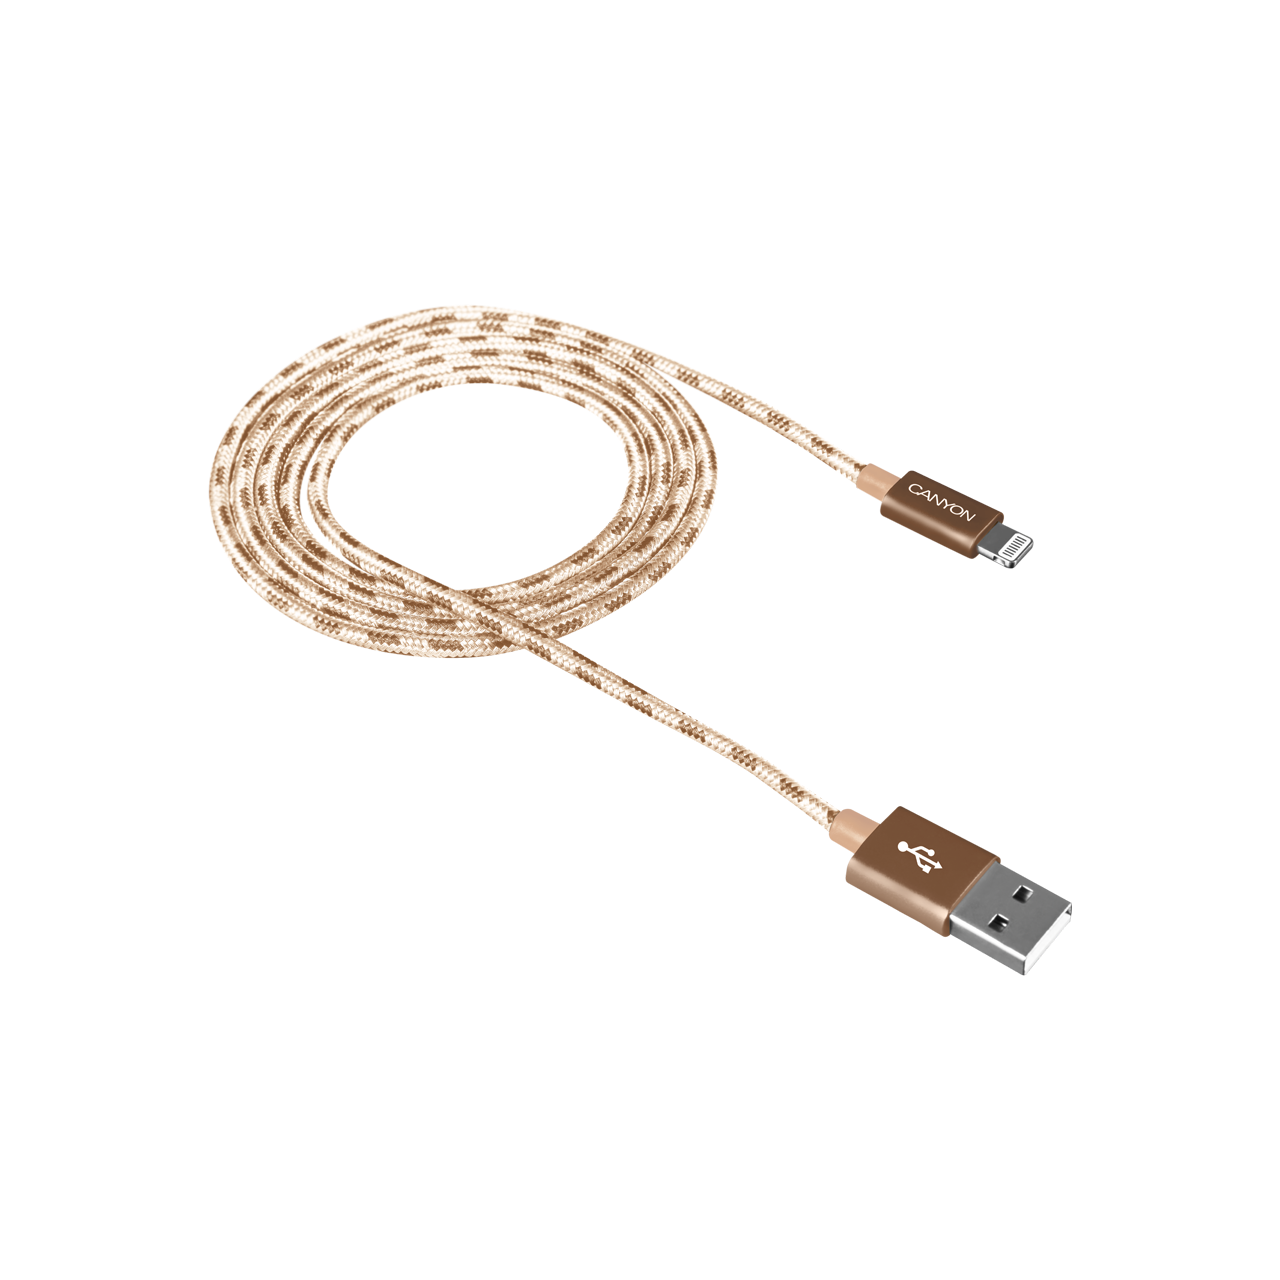 Braided 8-pin Lightning - USB cable for iPhone 5/6/7 (CNE-CFI3GO ...